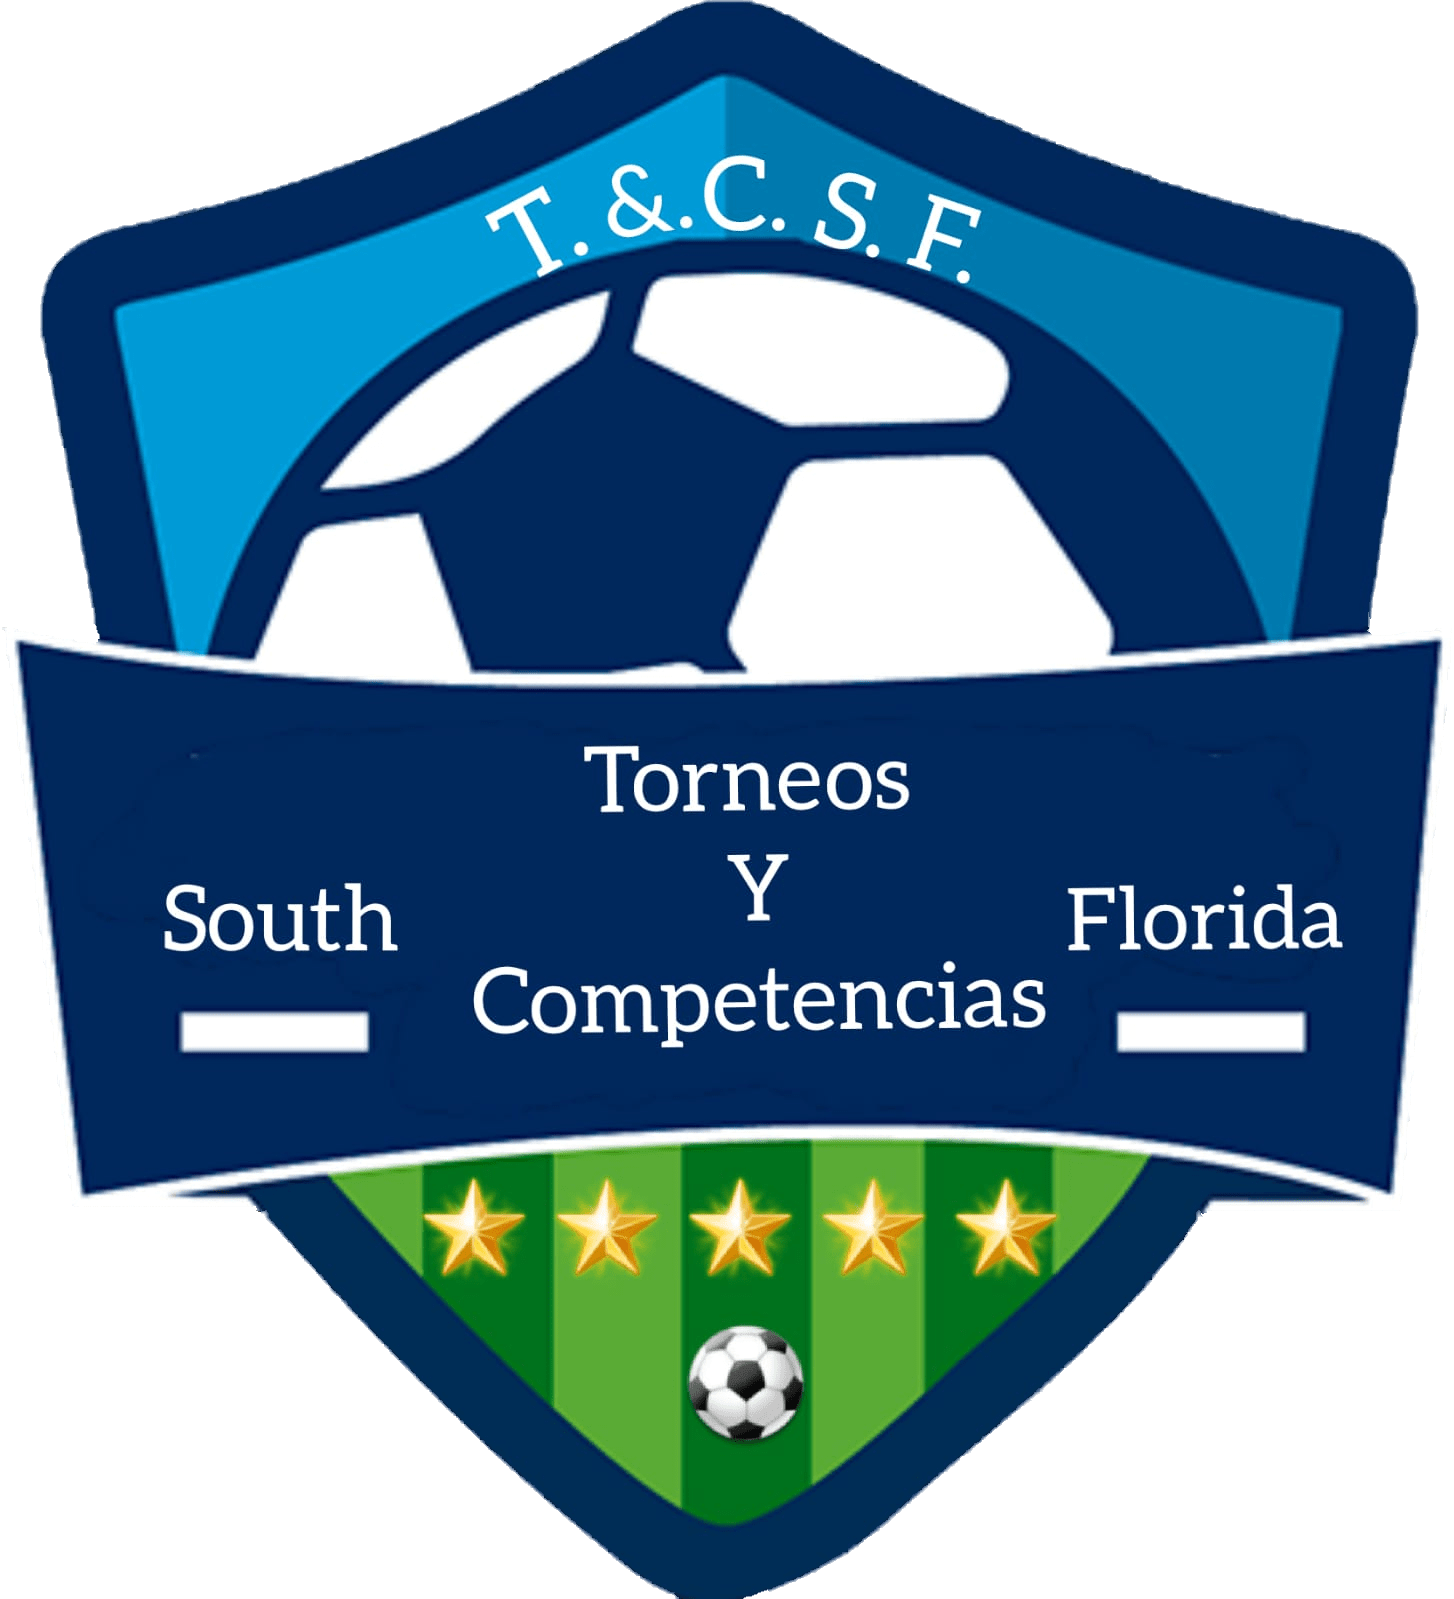 Torneos y Competencias South Florida